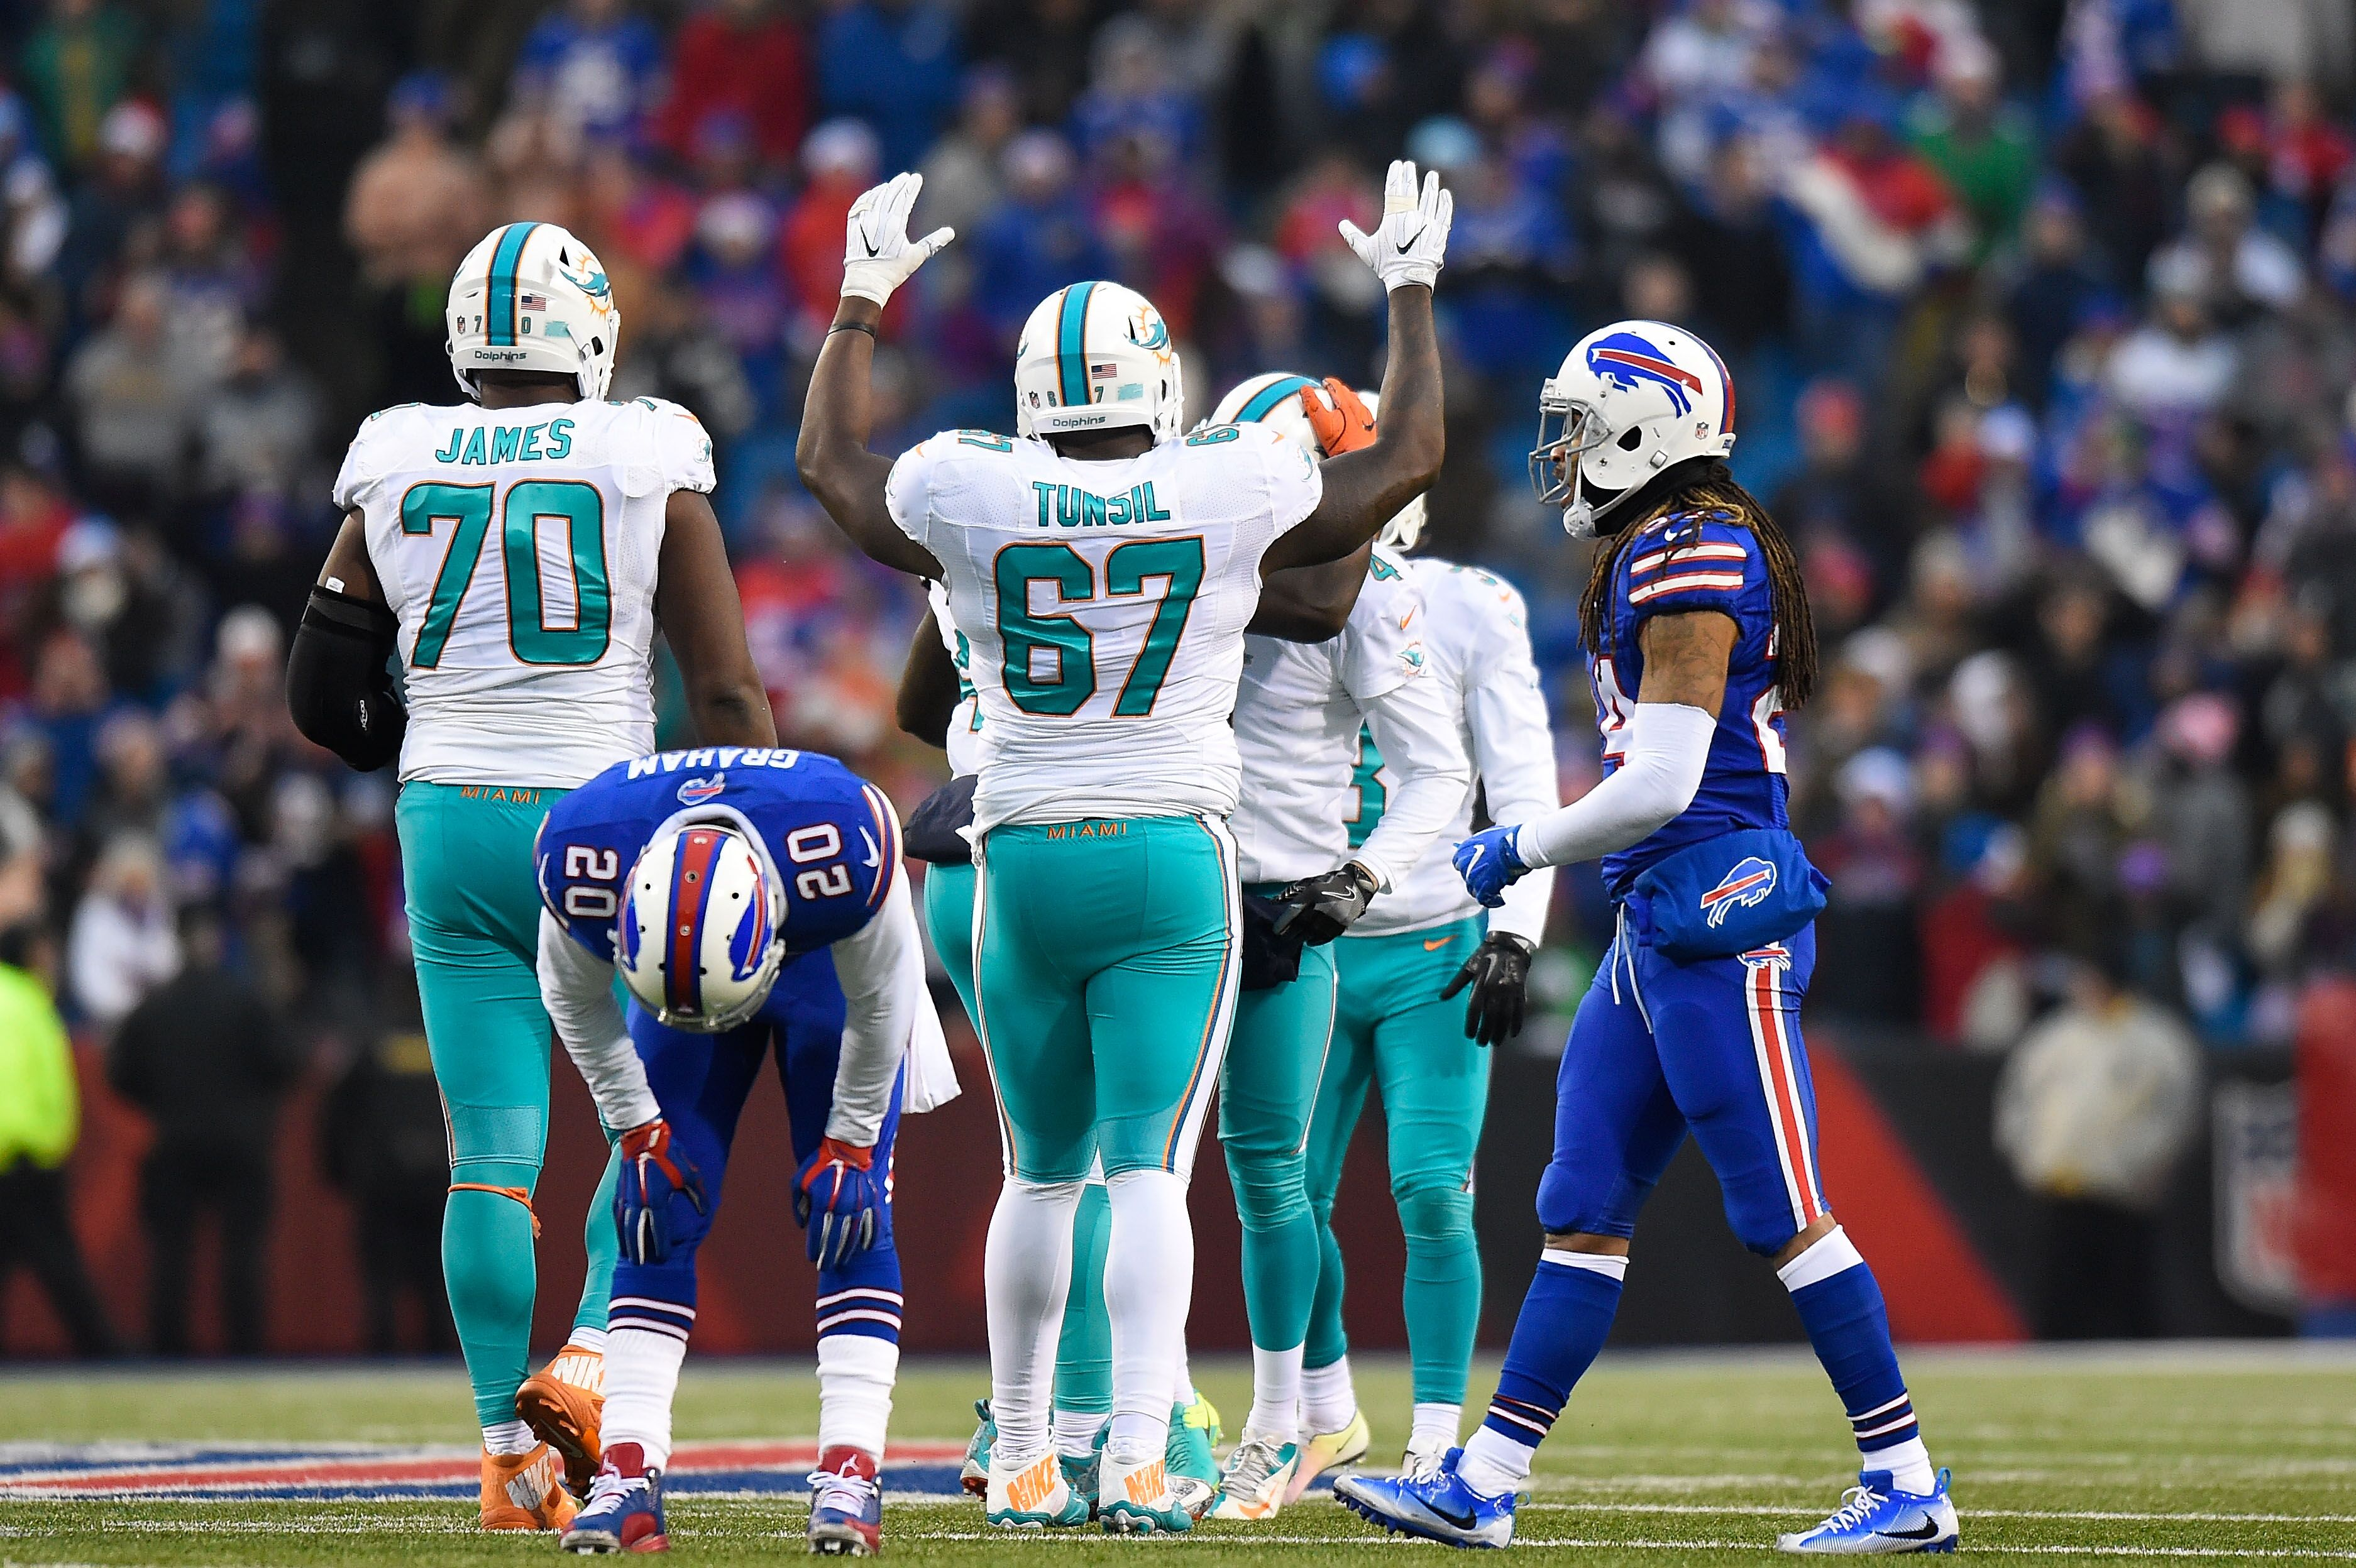 Miami Dolphins' Laremy Tunsil out of concussion protocol just in time